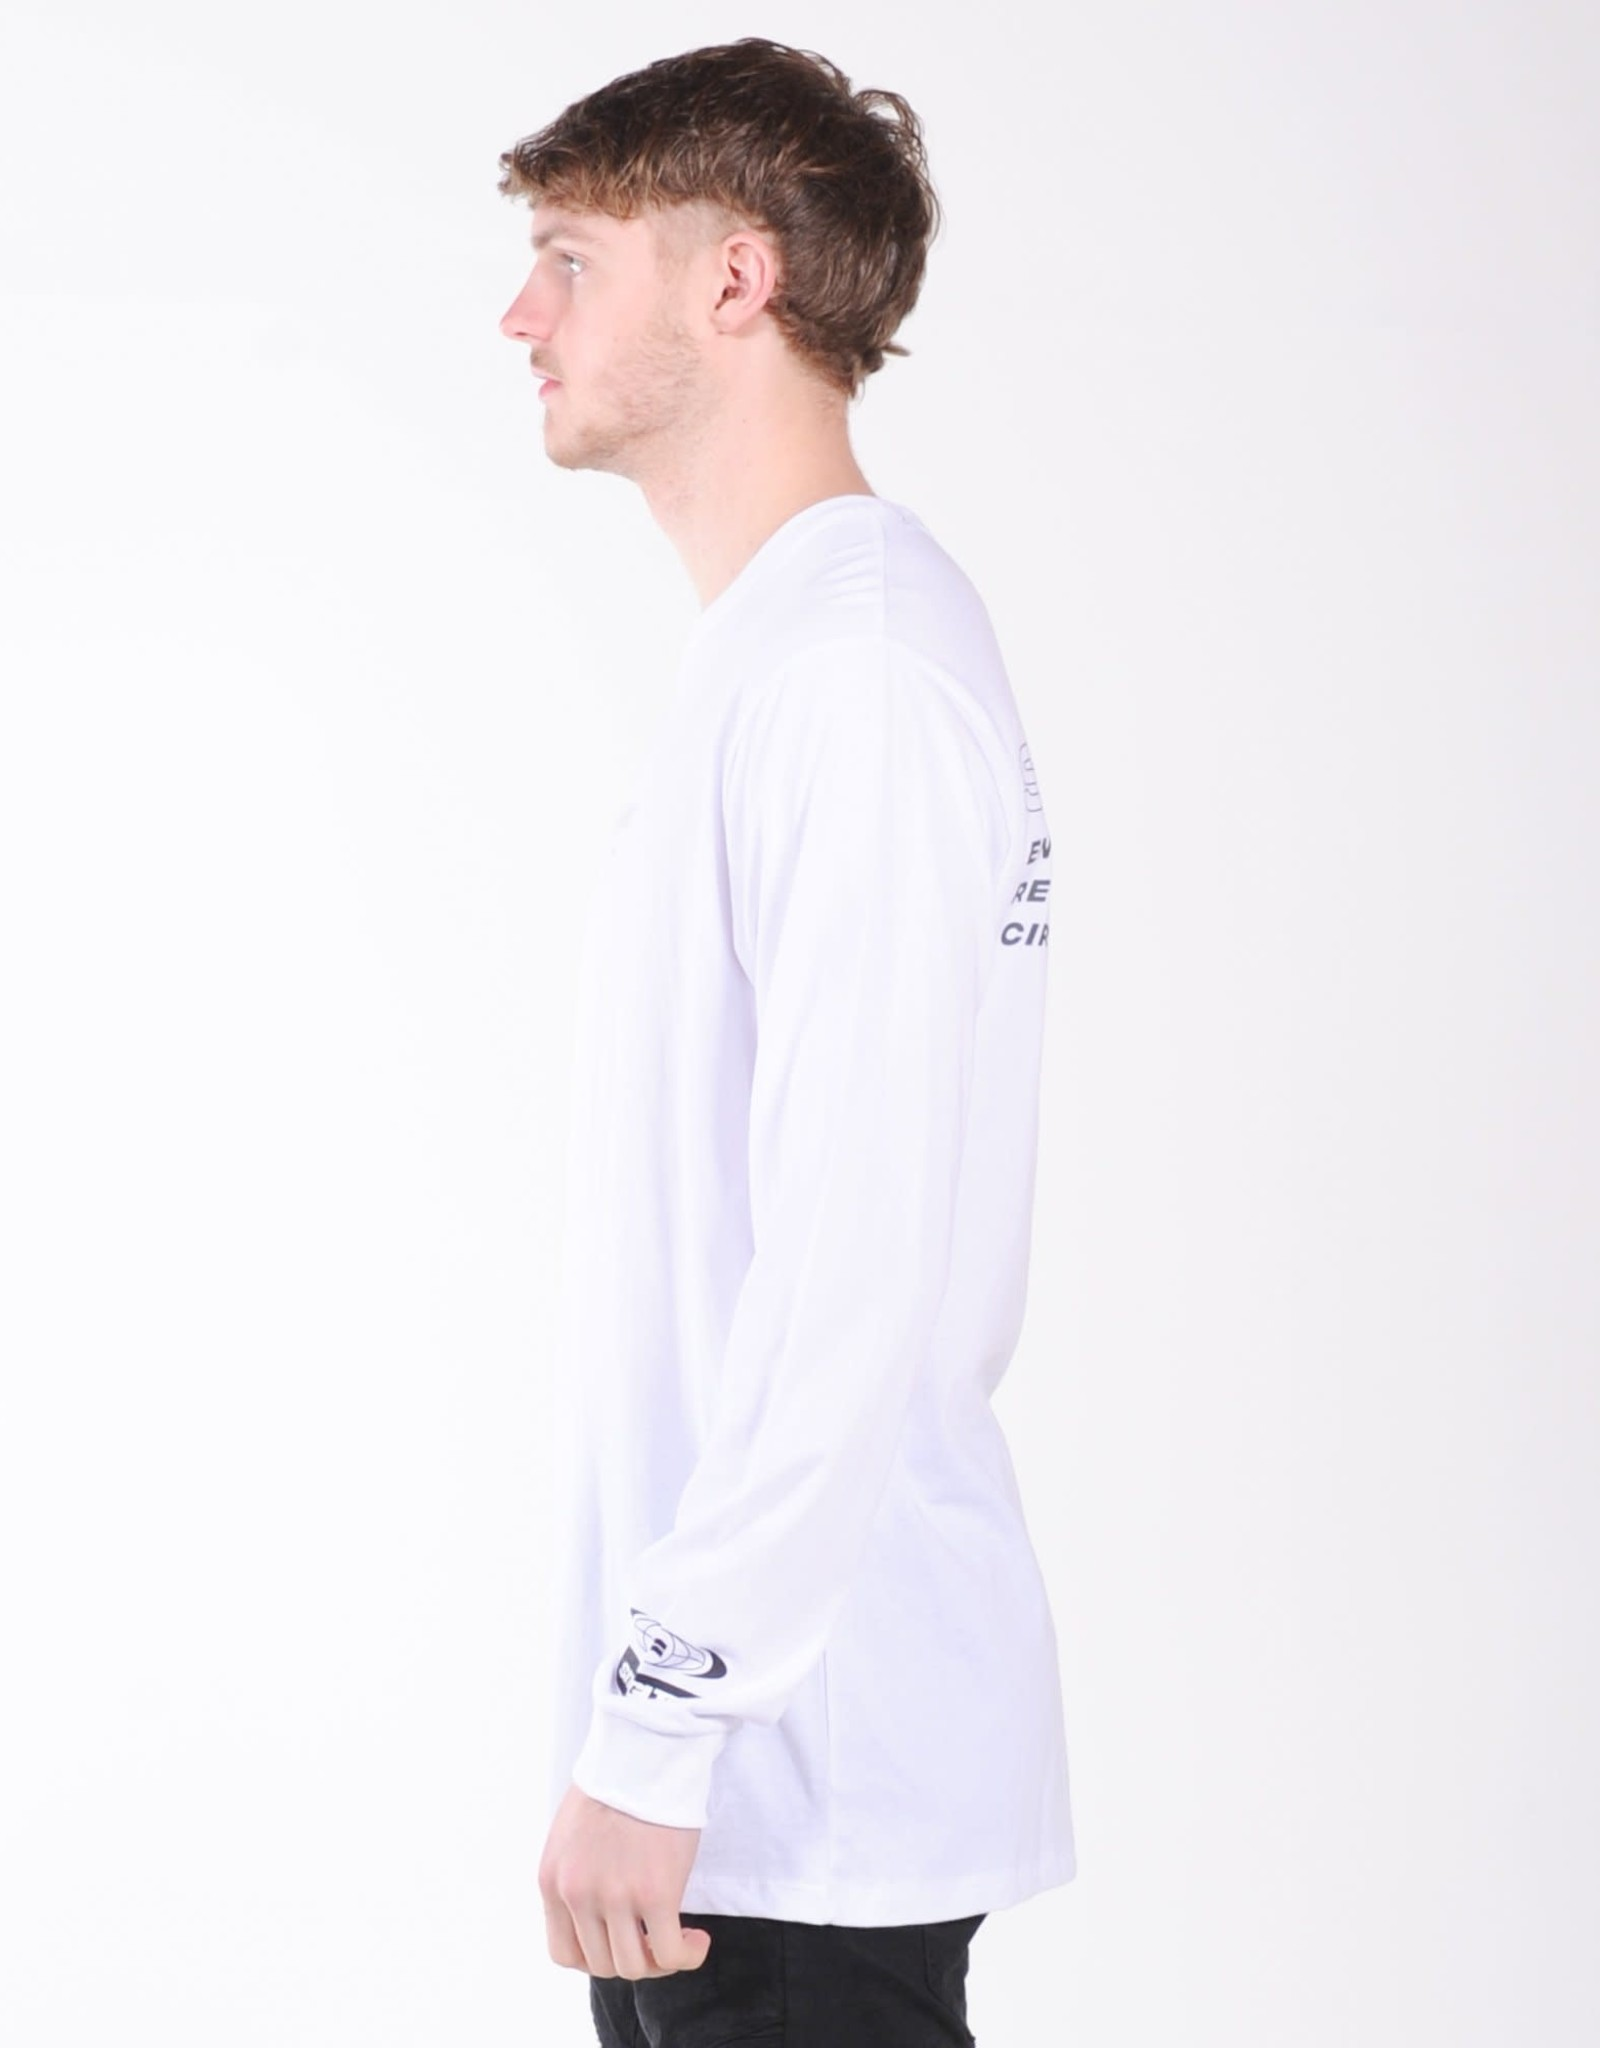 ST GOLIATH Over Lap L/S Tee